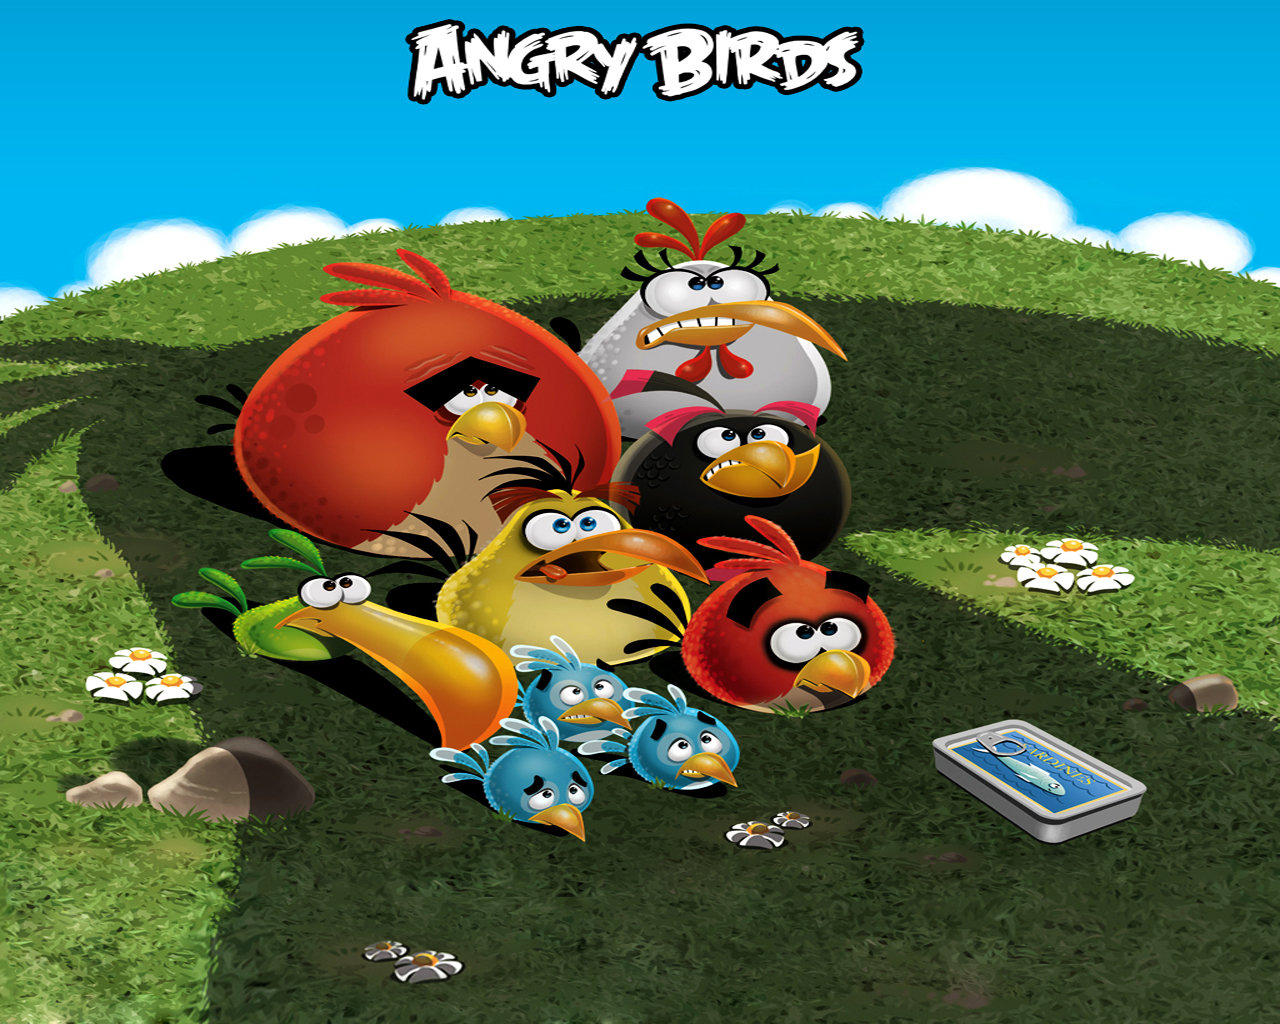 awesome angry birds free wallpaper id:256643 for hd 1280x1024 pc